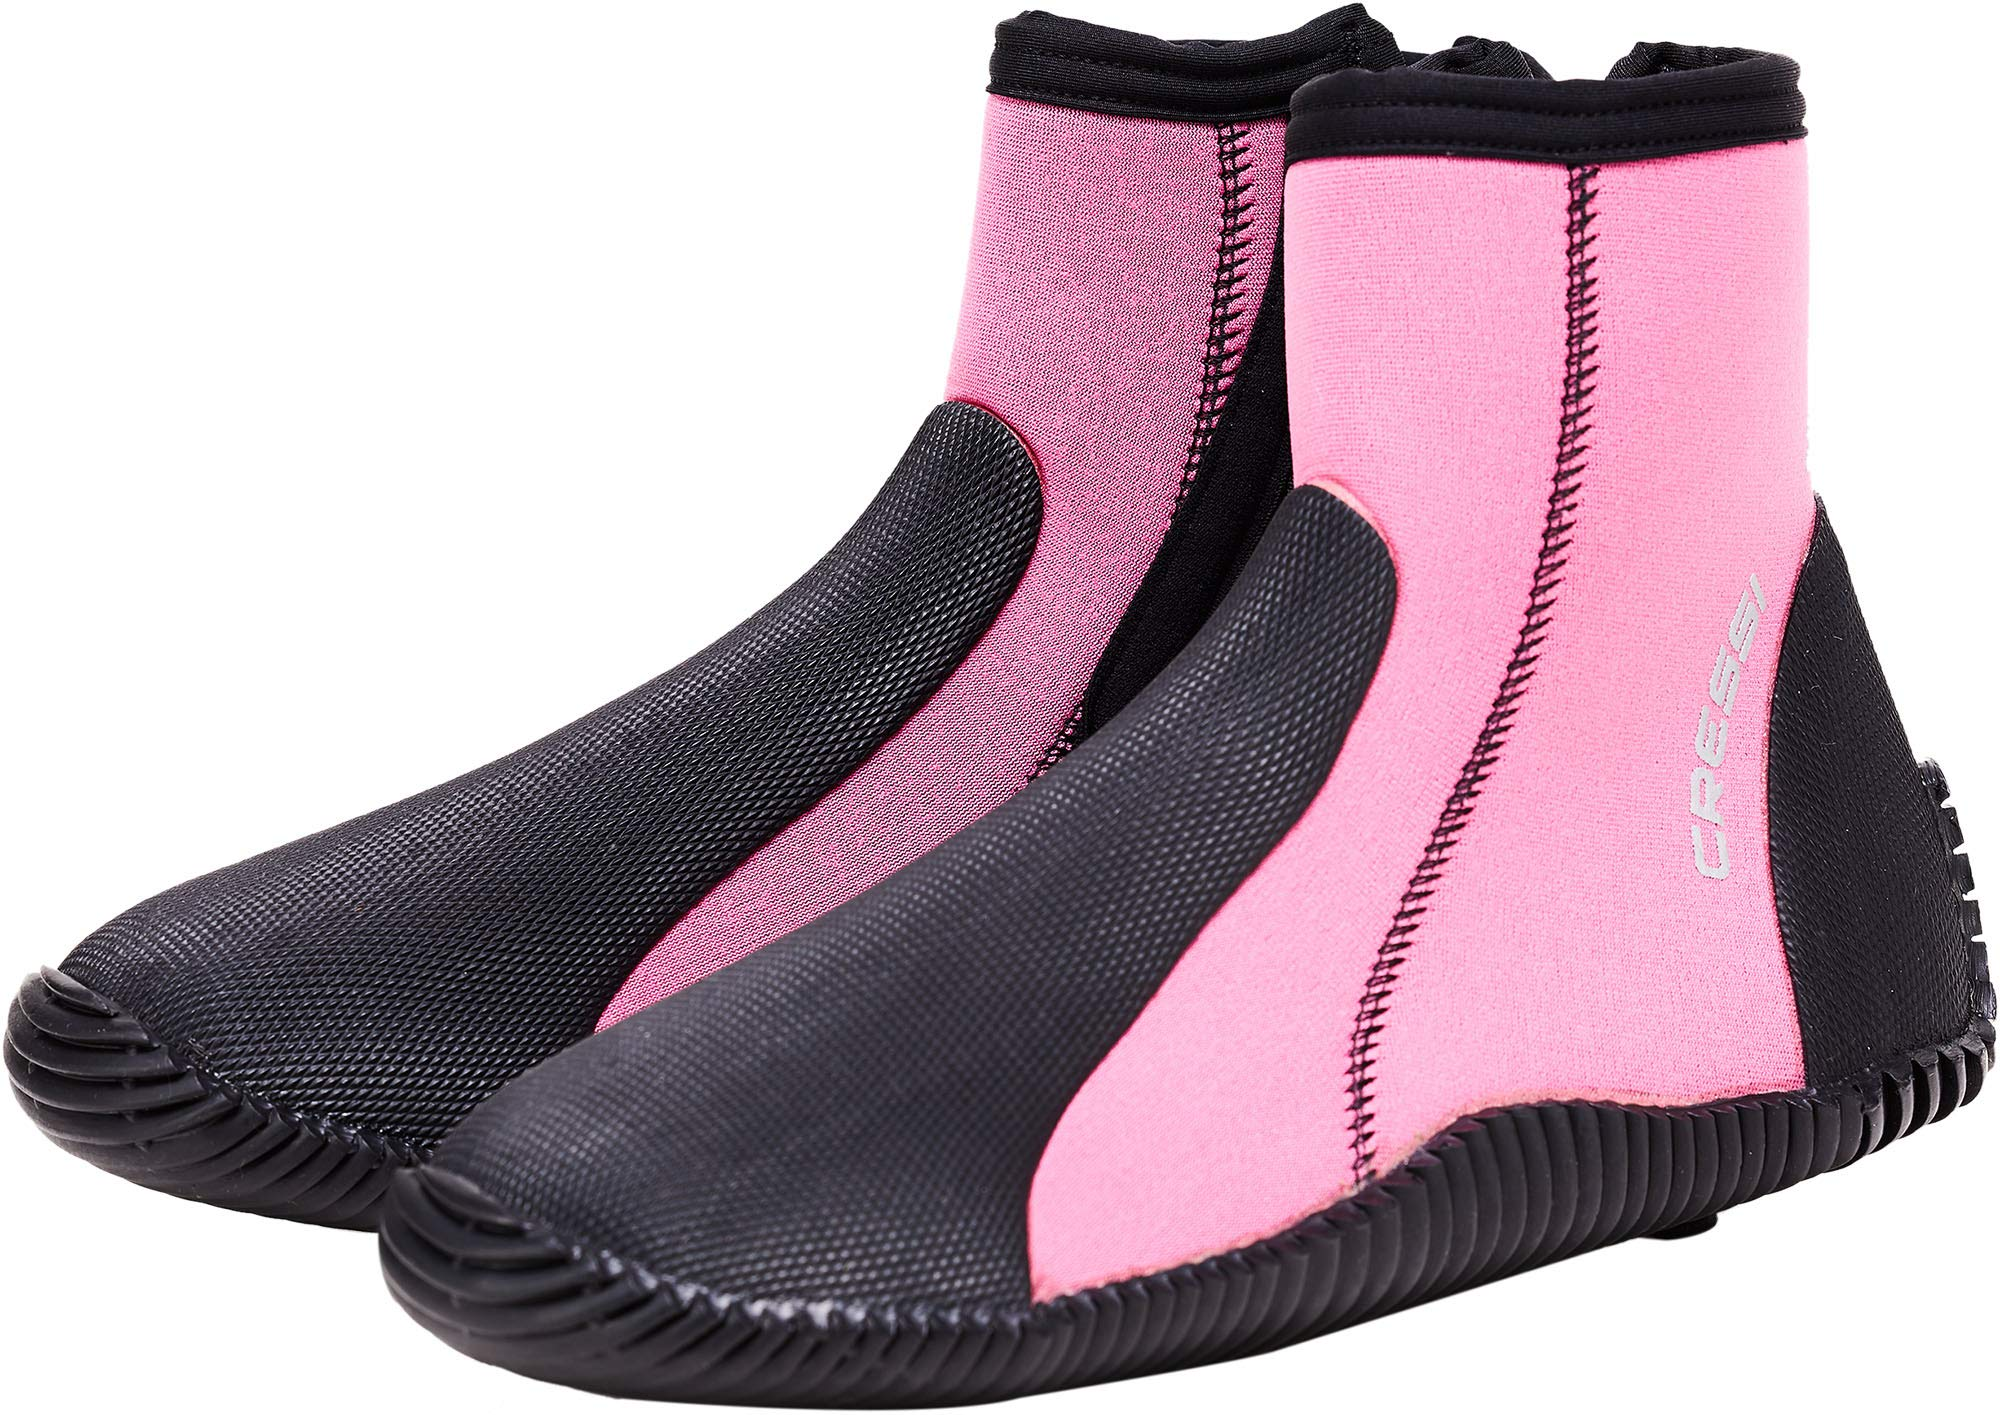 08f9a463b Top Chaussons de plongée selon les notes Amazon.fr